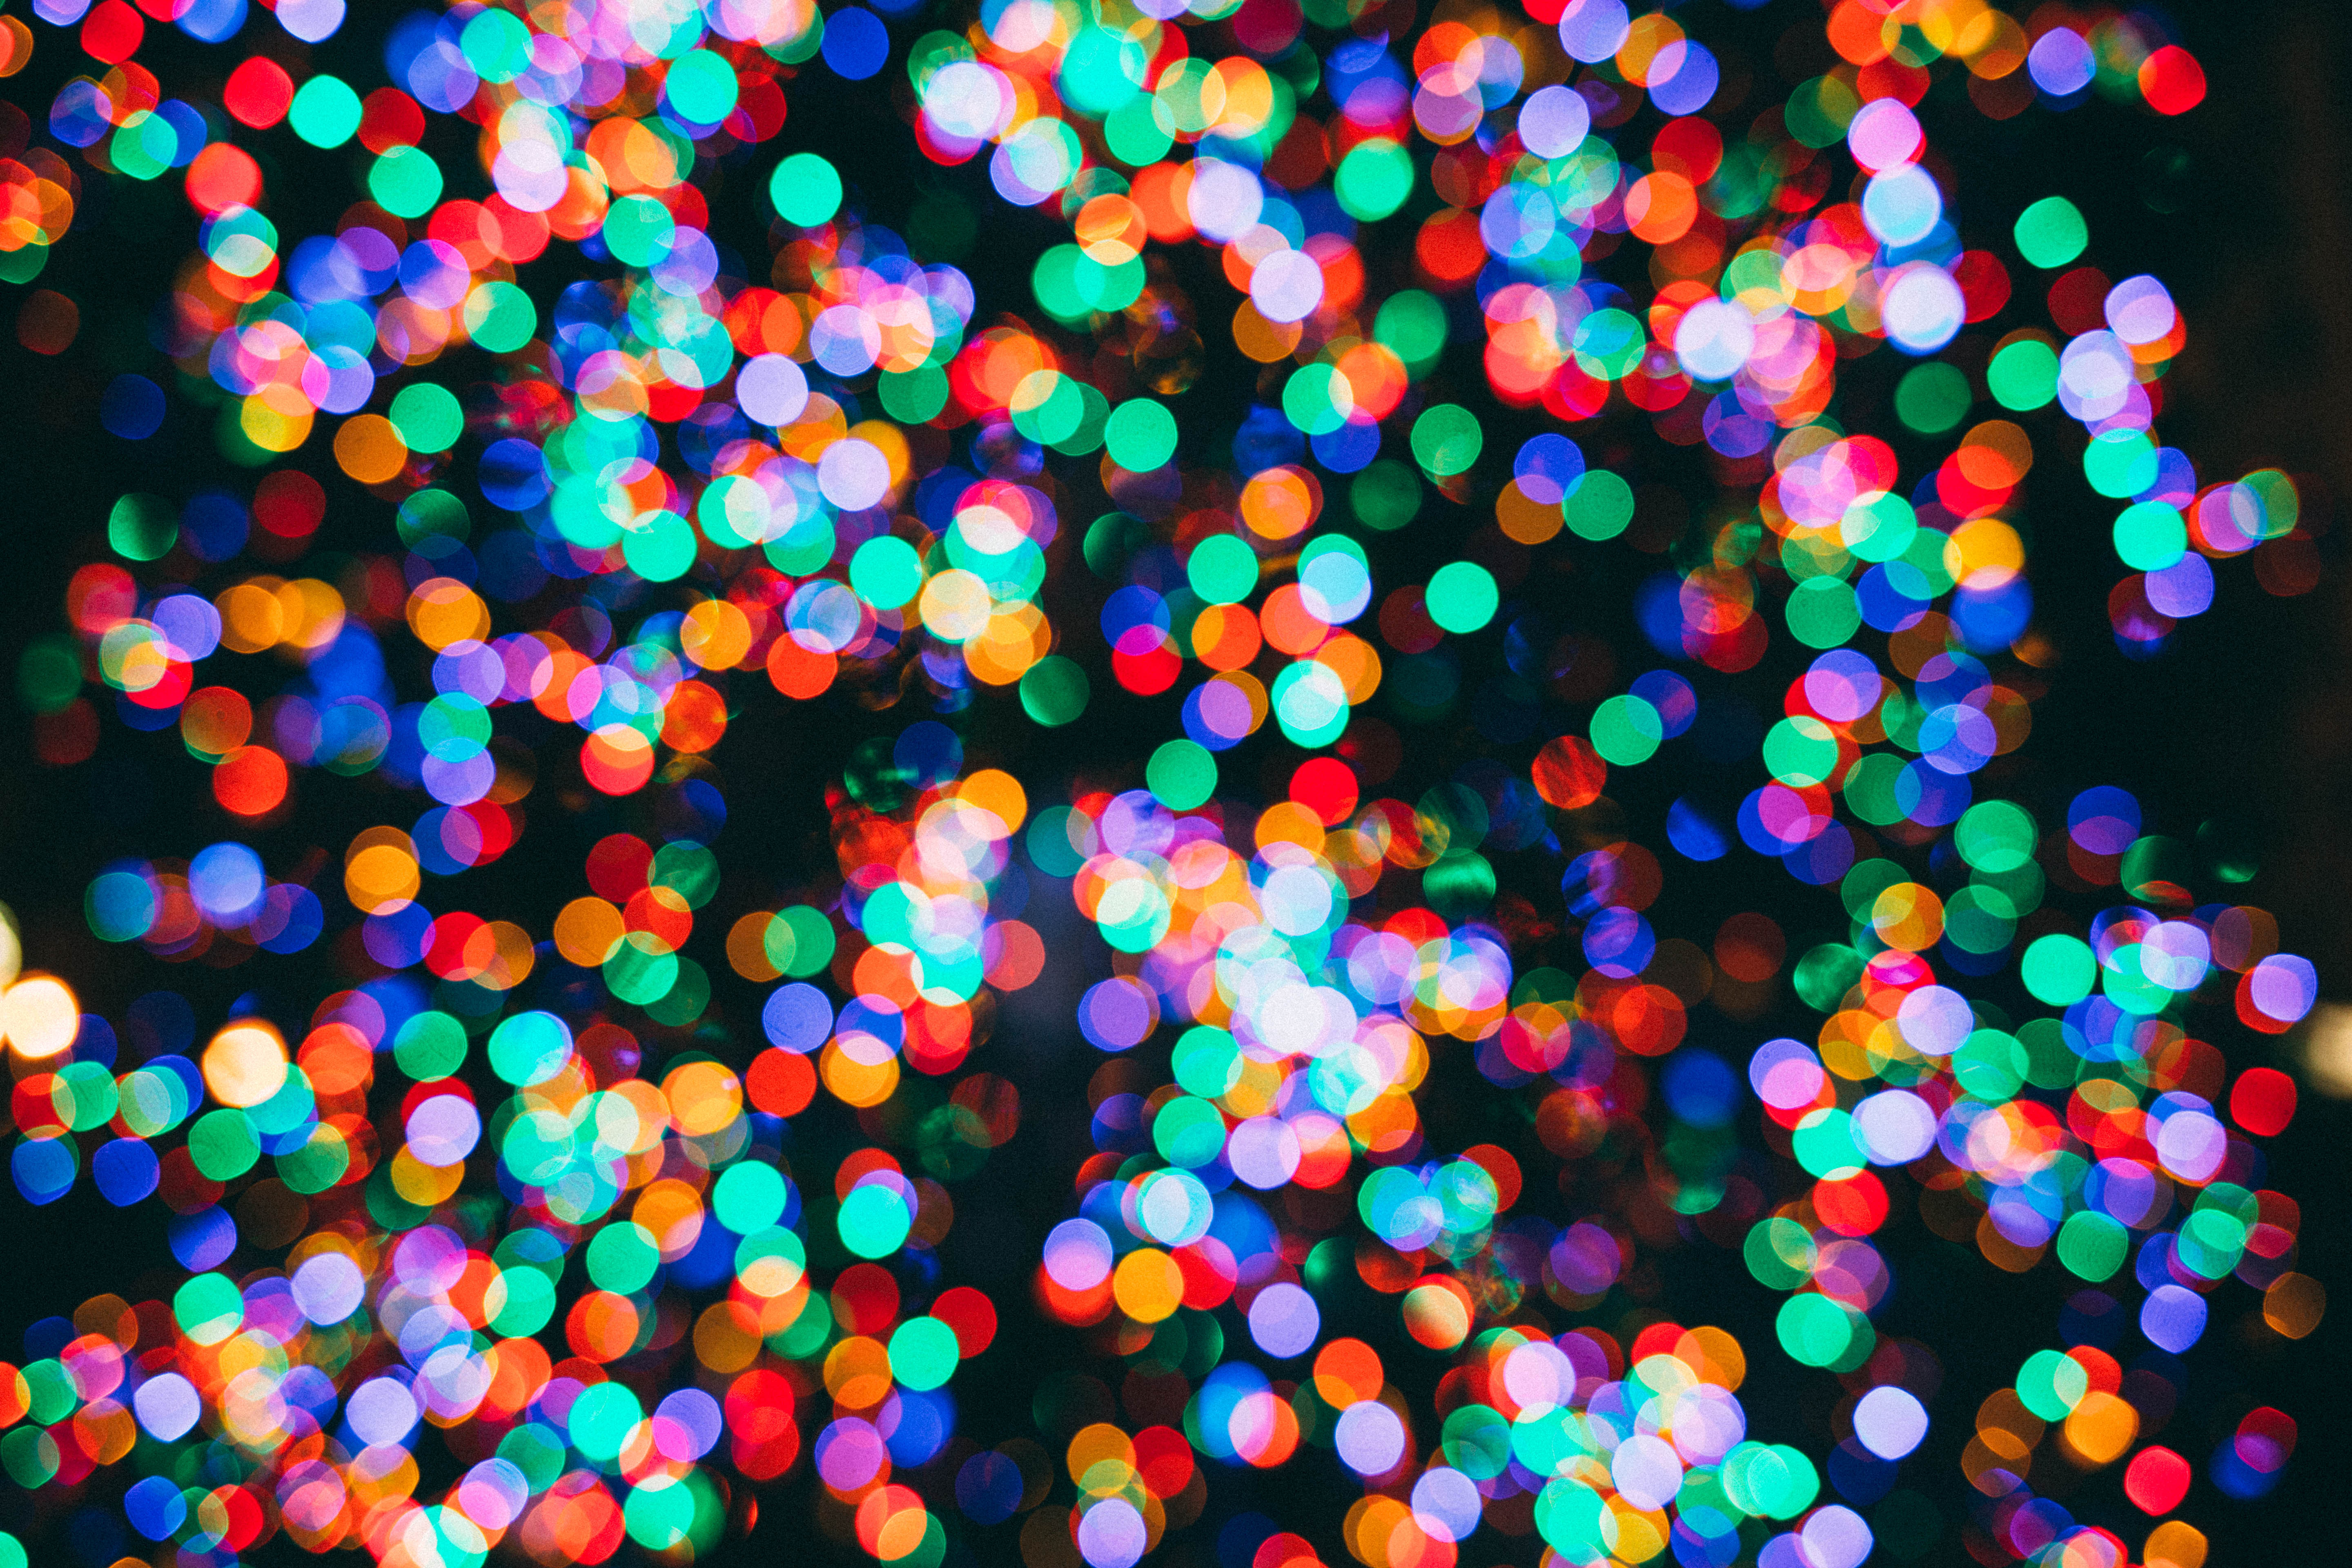 Colorful circles of light background